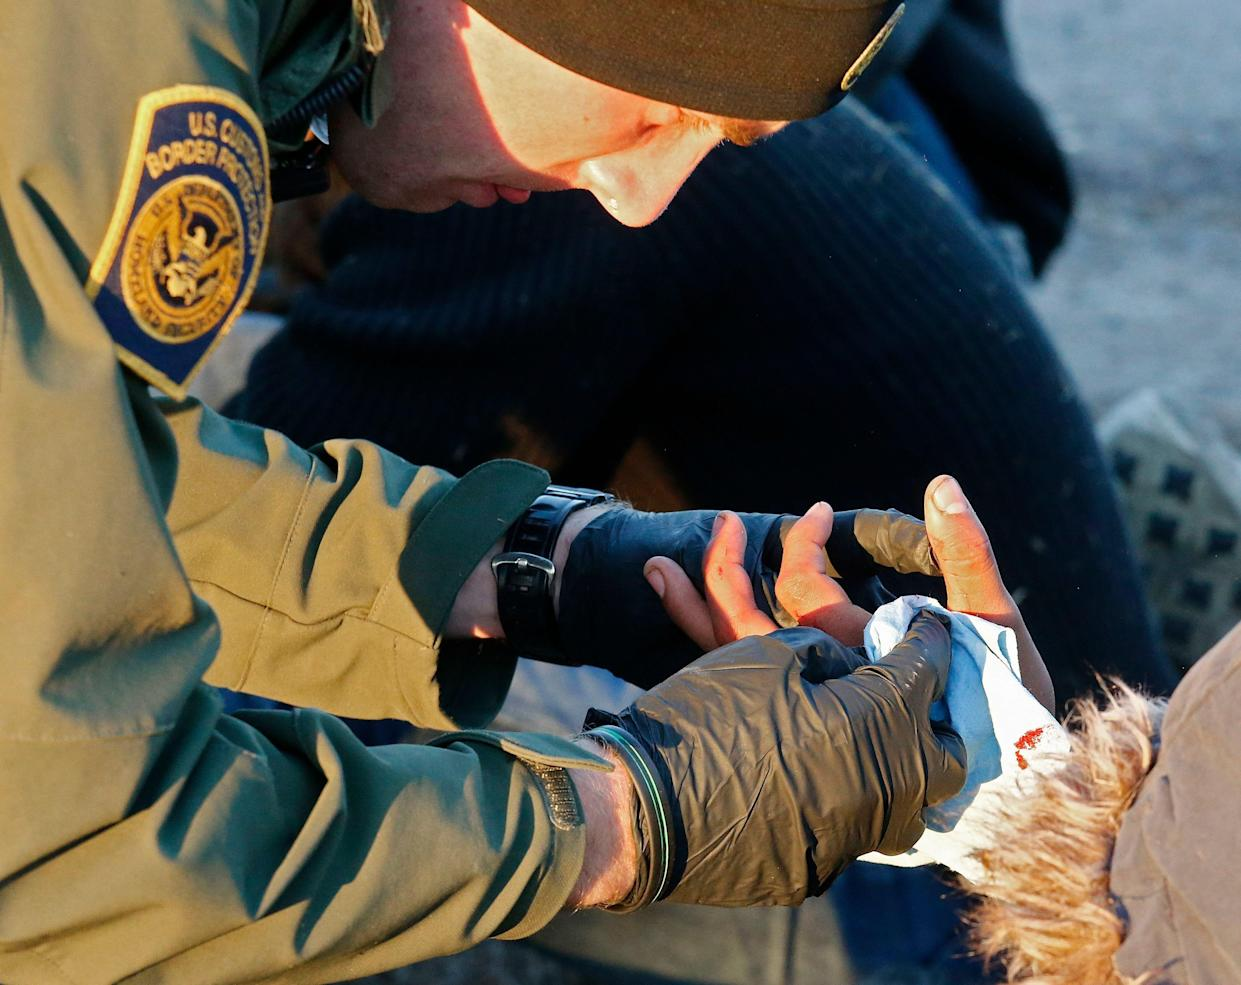 A Border Patrol agent tends to a person suspected of entering the United States illegally near McAllen, Texas. (Photo: Larry W. Smith/EPA-EFE/Shutterstock)